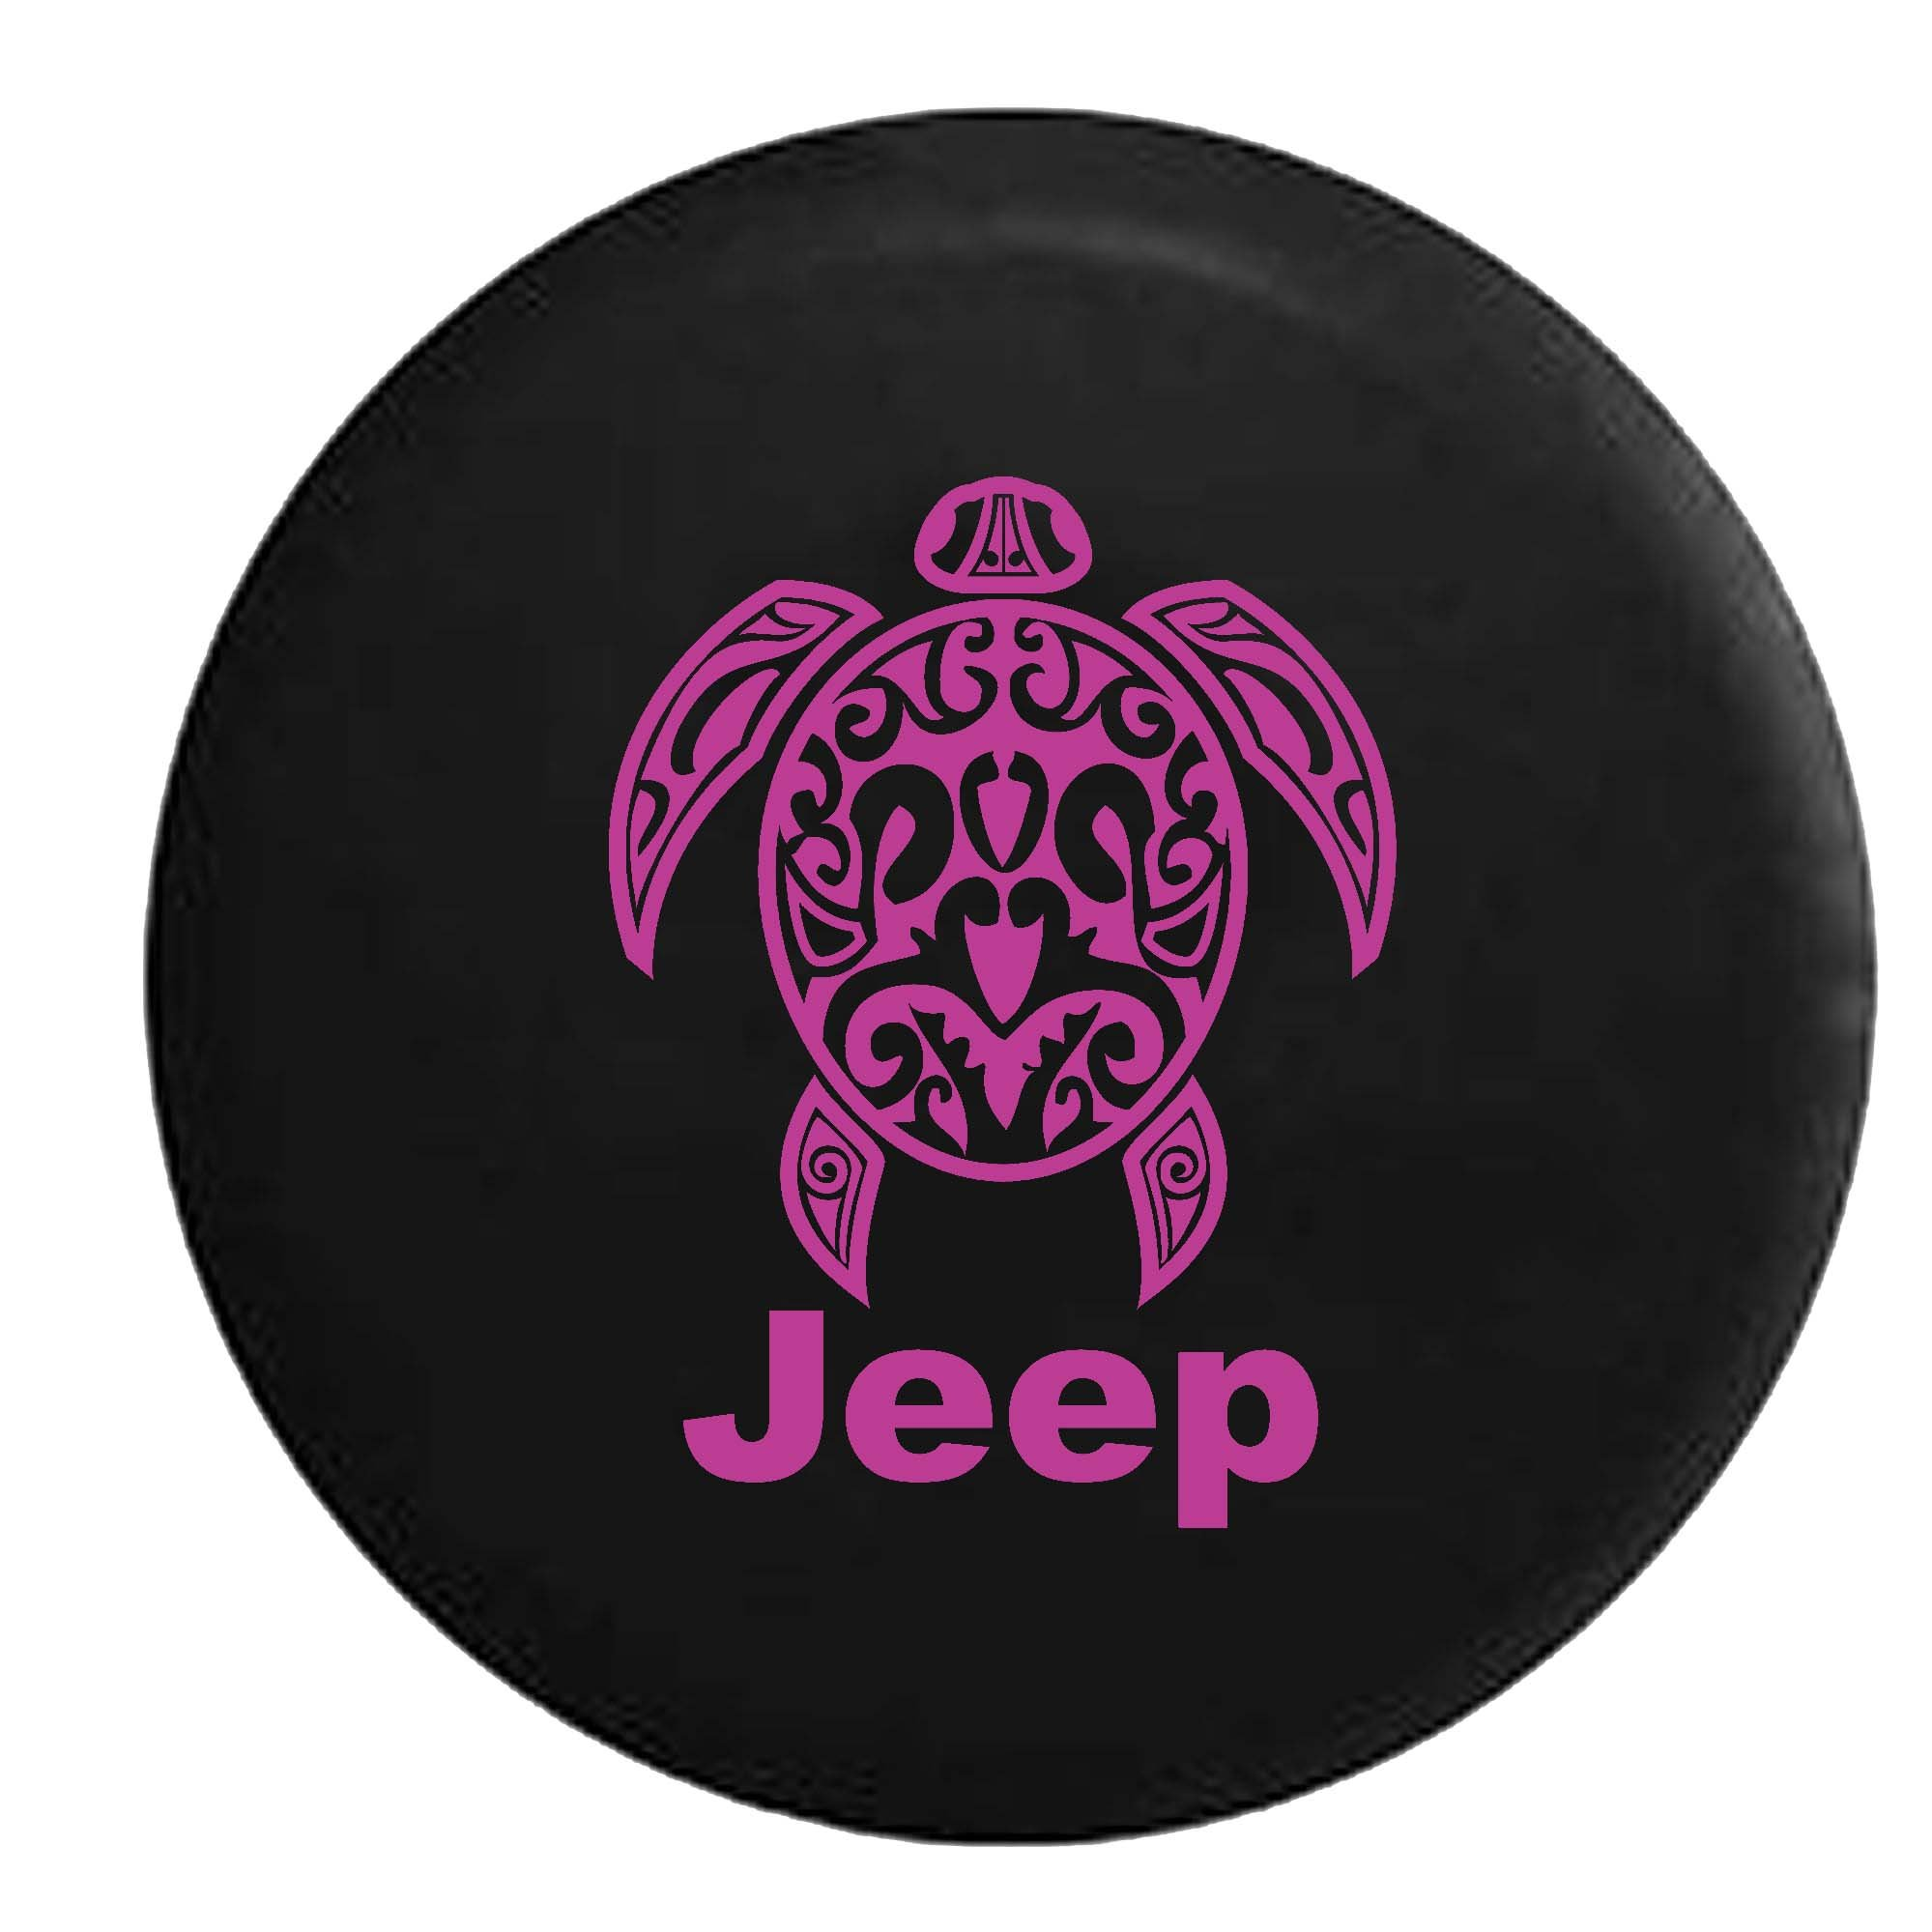 PinkInk - Jeep Sea Turtle Diving Beach Marine Life Spare Tire Cover Vinyl Black 33 in